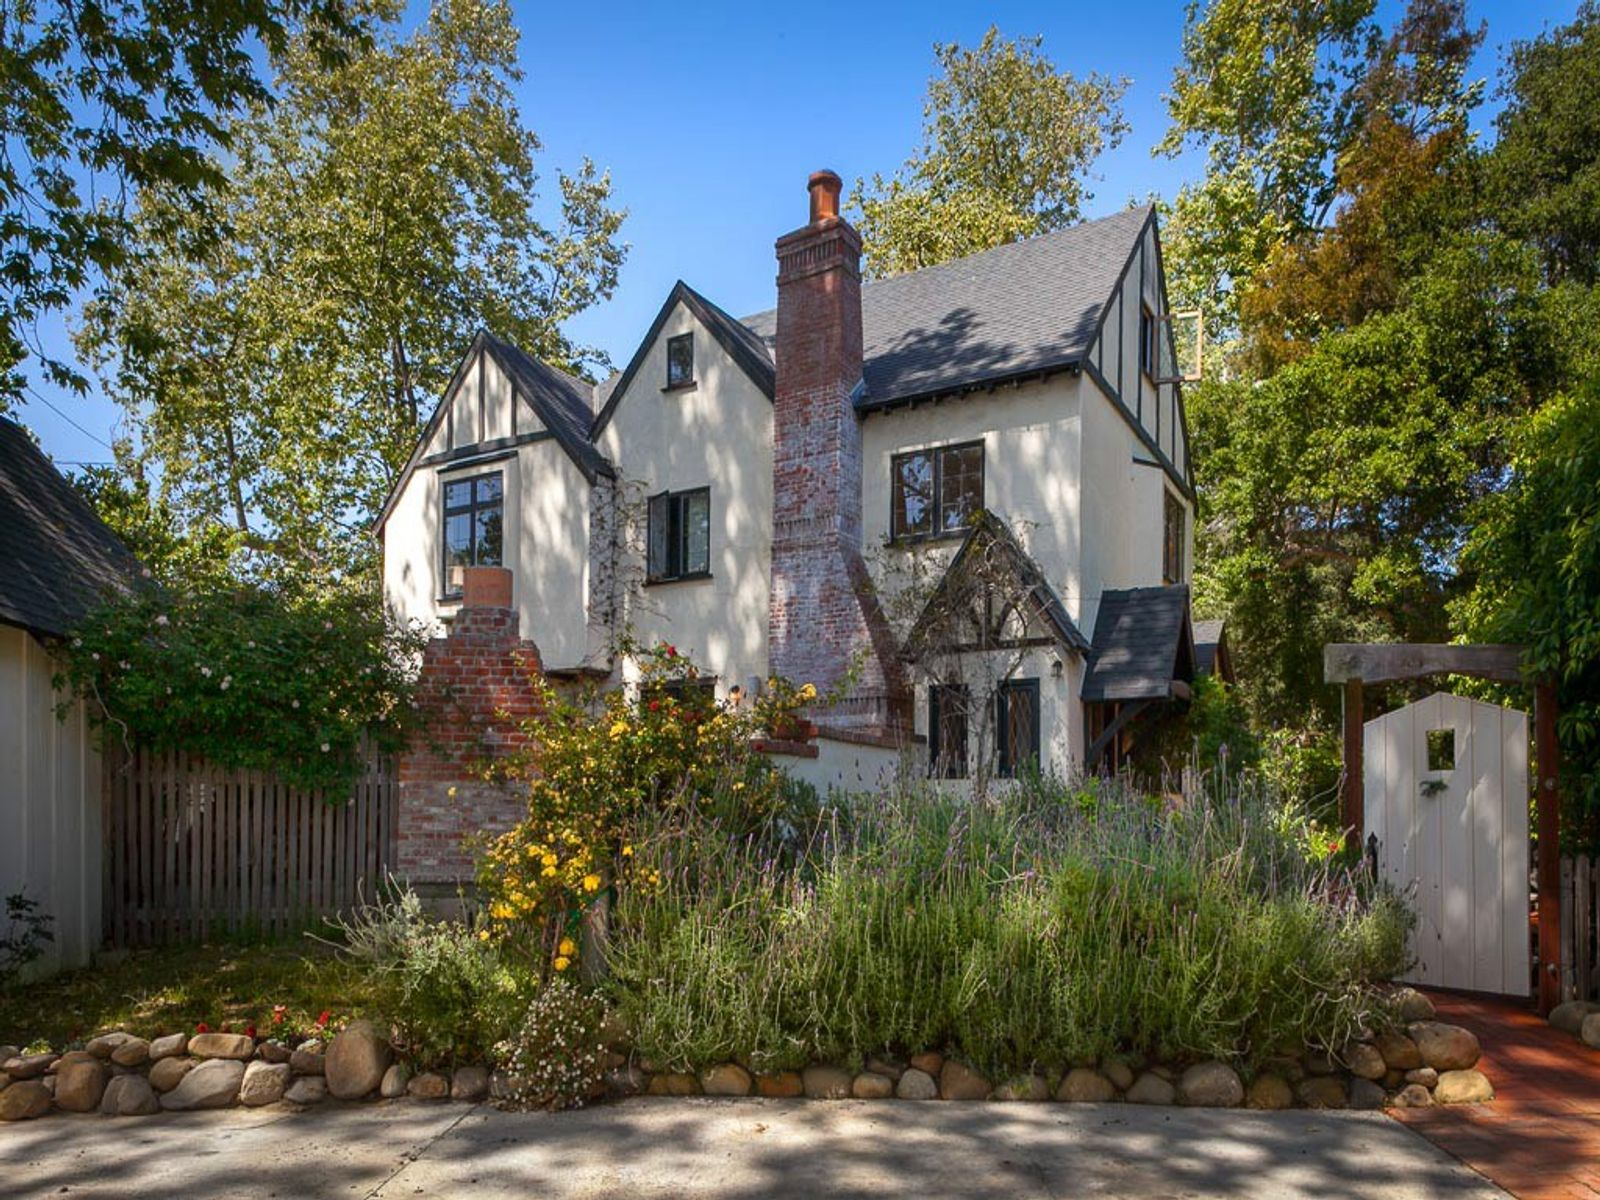 Creekside Montecito Tudor, Montecito CA Single Family Home - Santa Barbara Real Estate